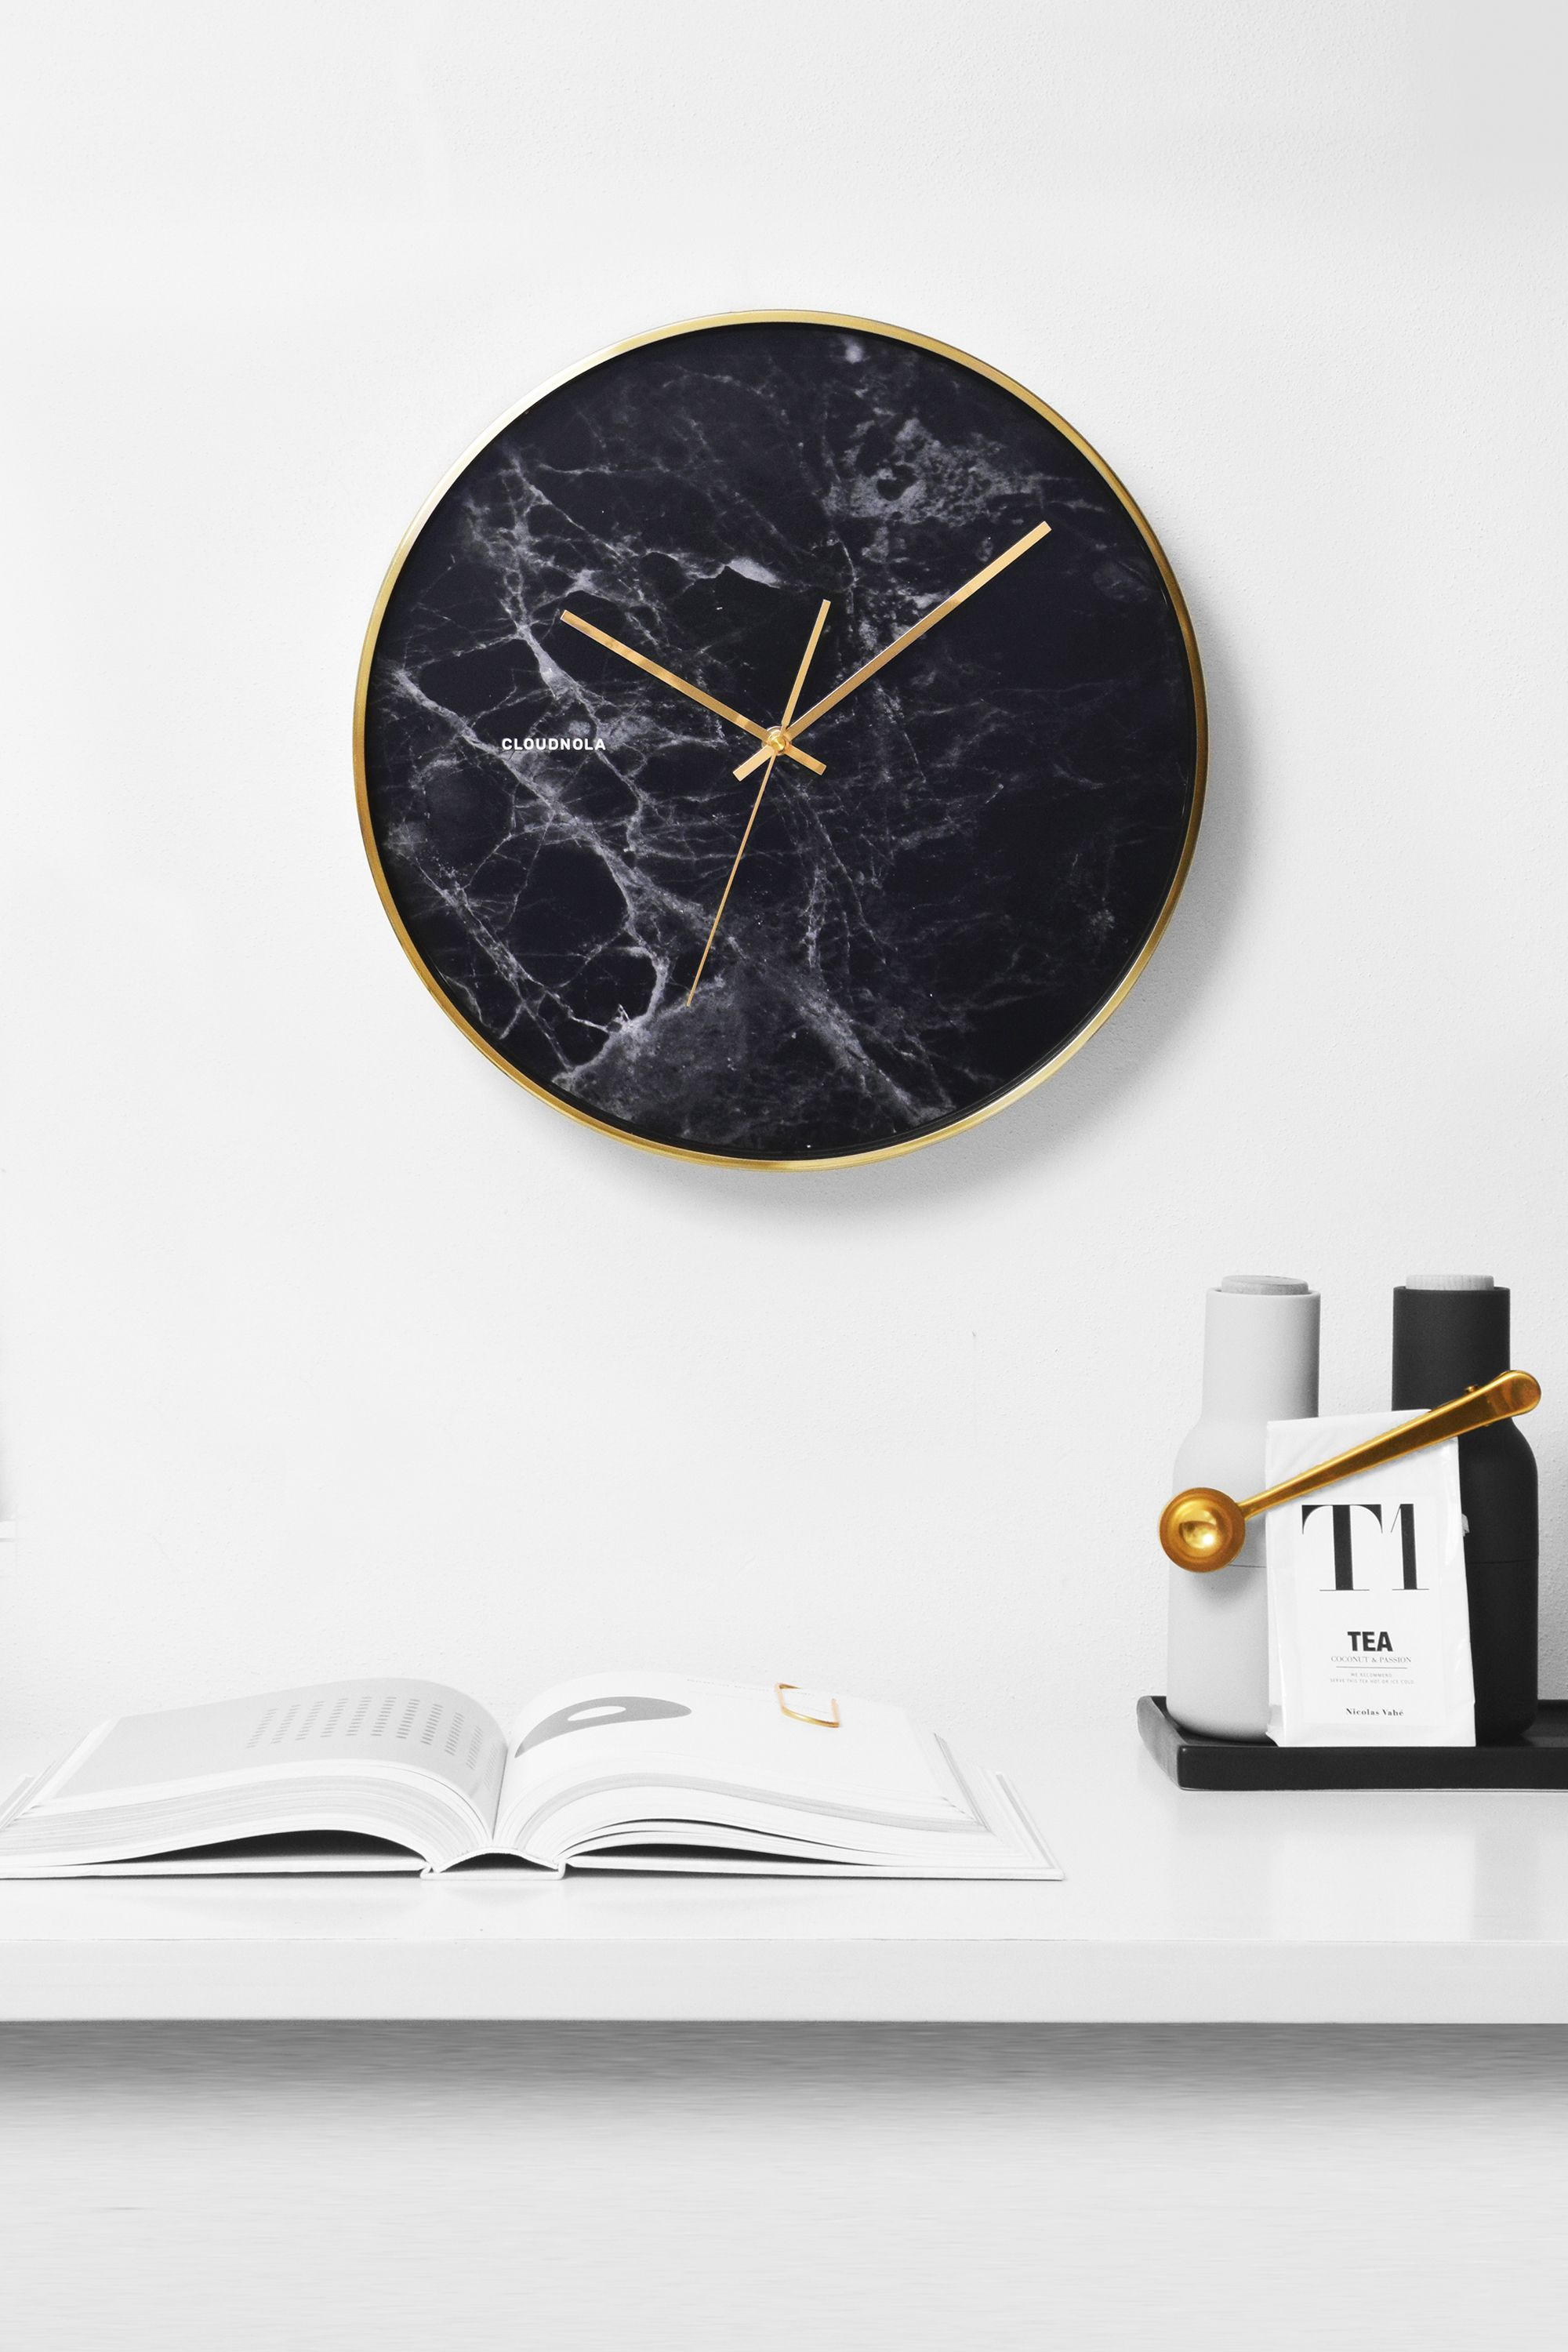 Structure Black Marble Clock With Golden Case By Cloudnola